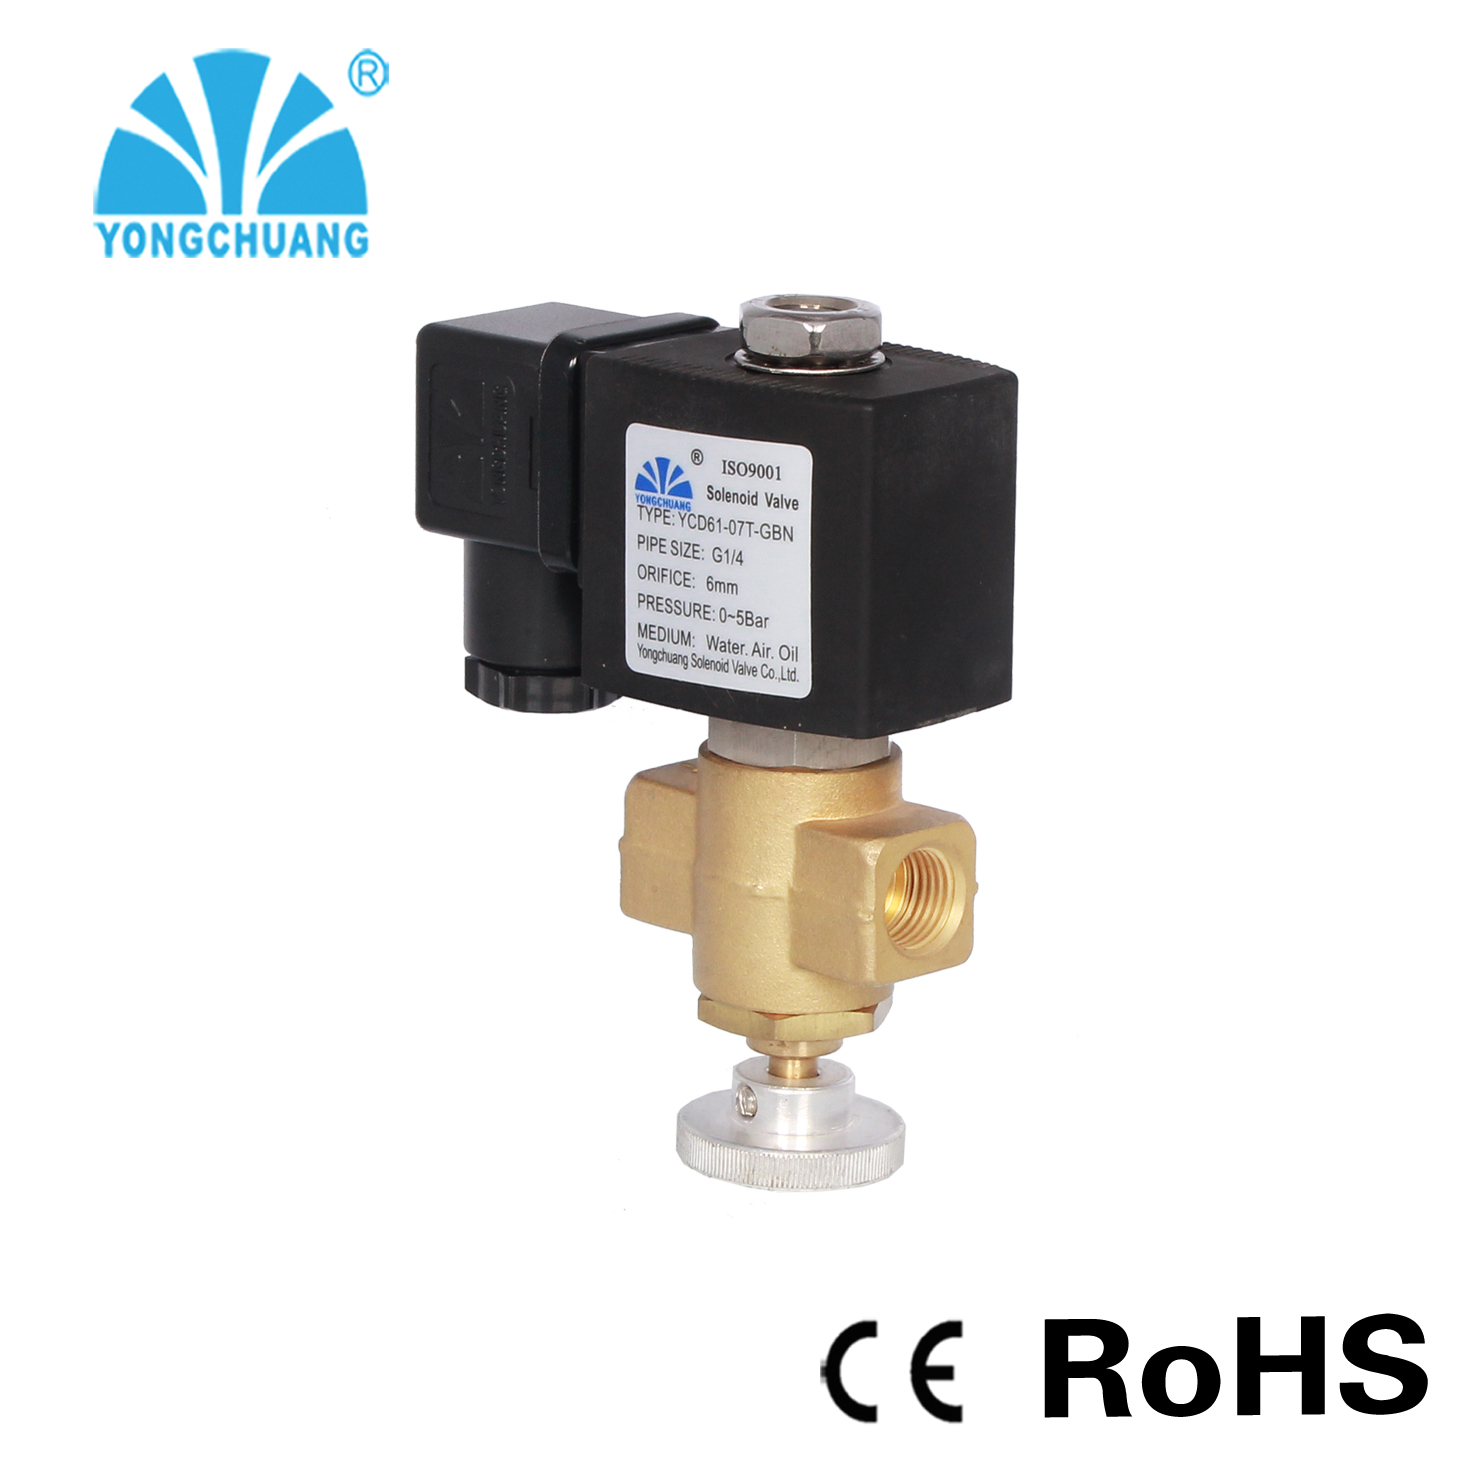 YONGCHUANG YCD61 CE genehmigt einstellbar IPG gas-magnetventil 230 v